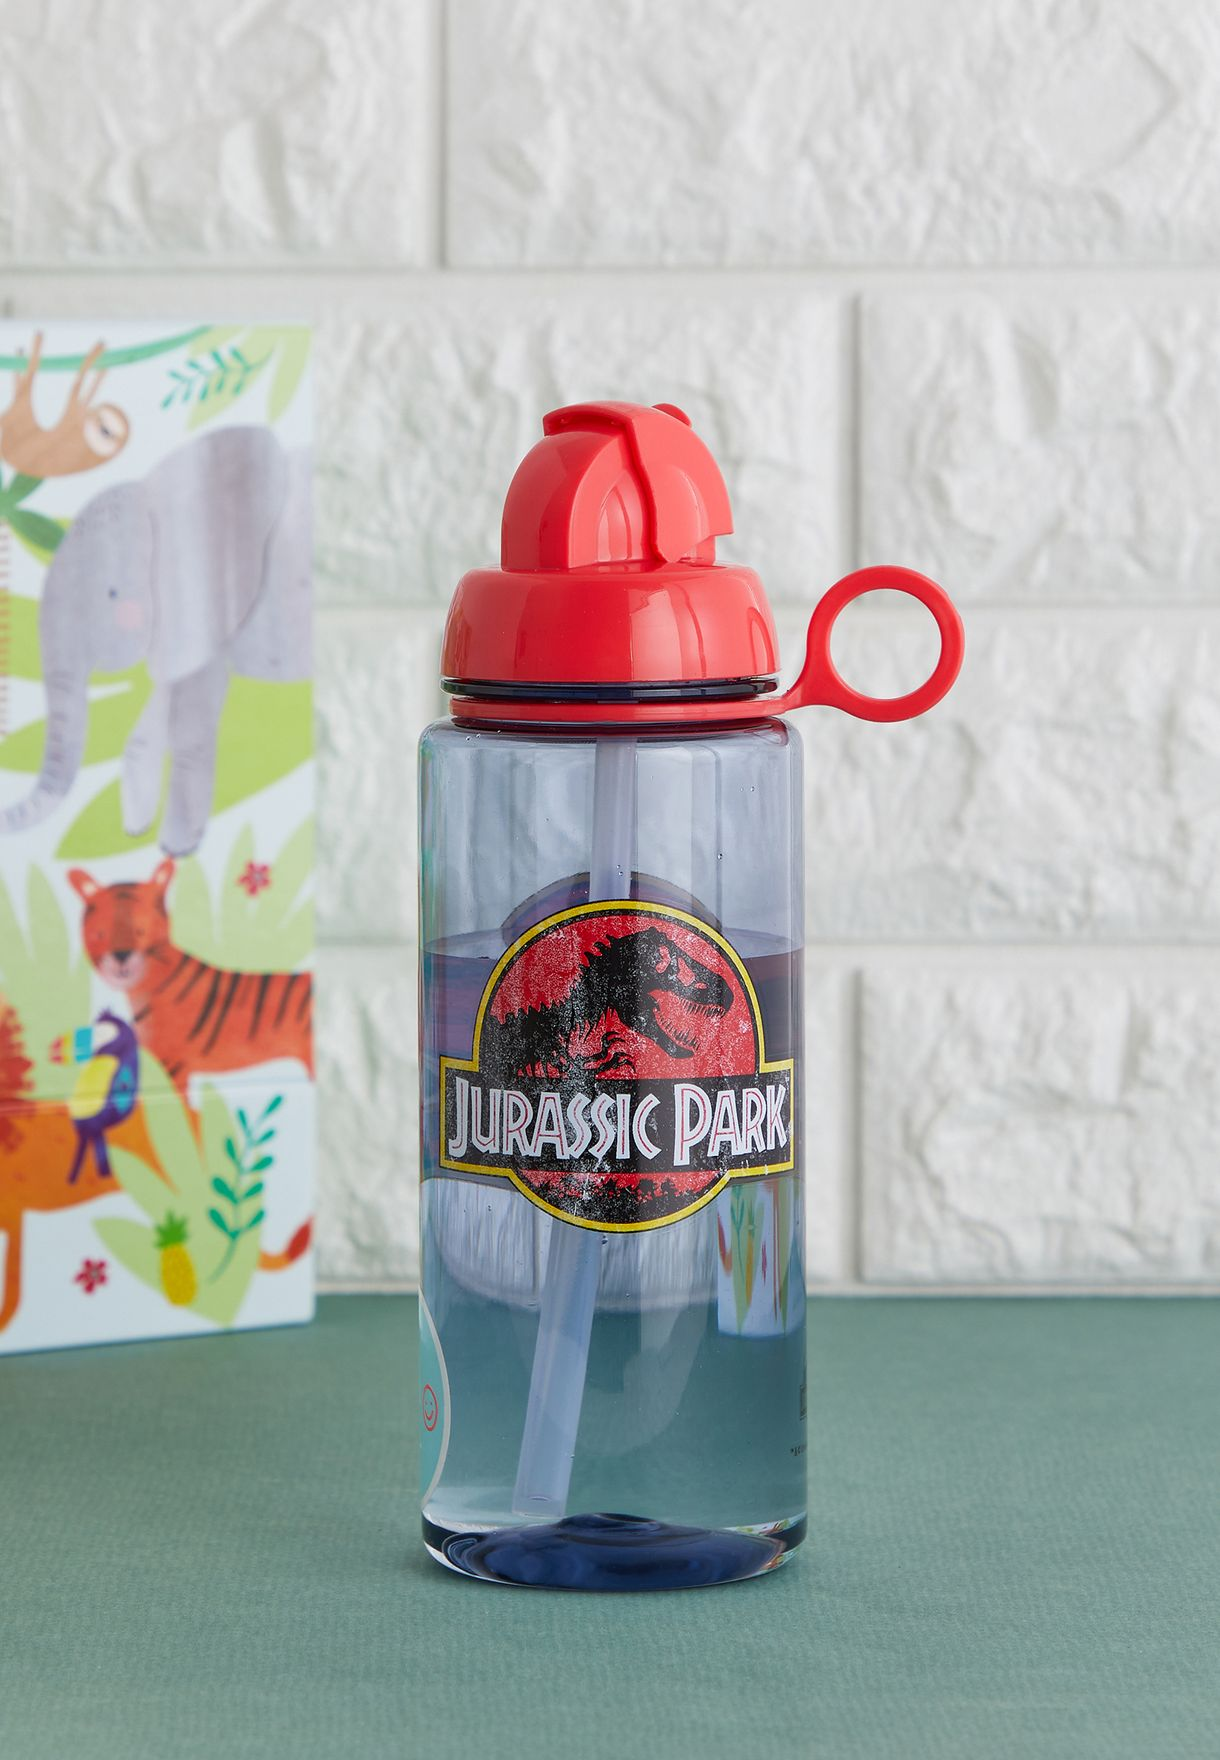 Jurassic Park  Drink Bottle